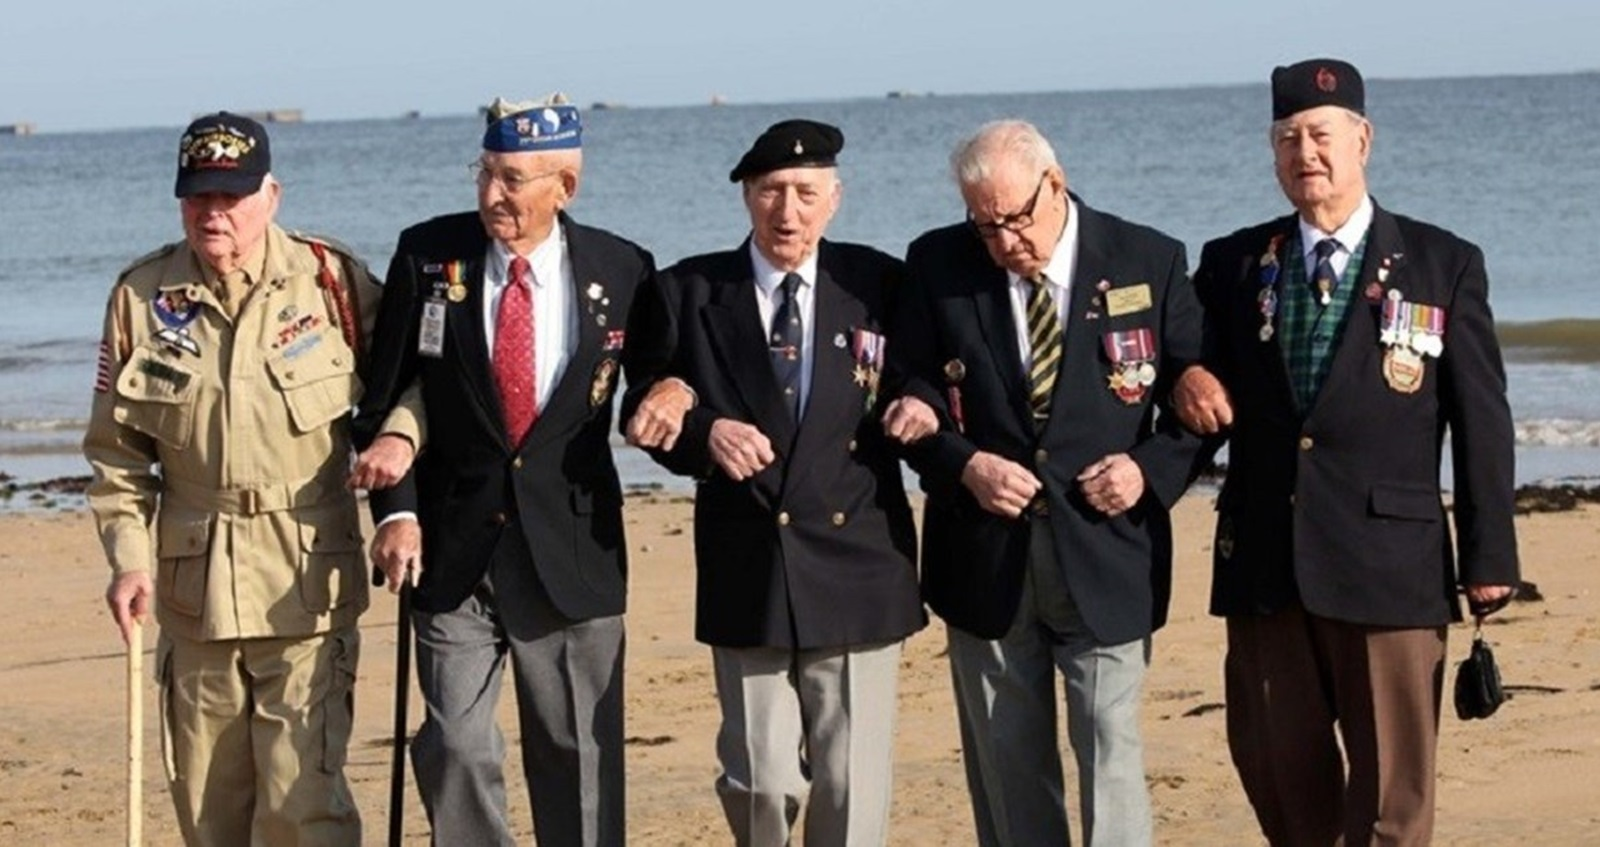 D-Day Veterans walking arm in arm along Normandy beach